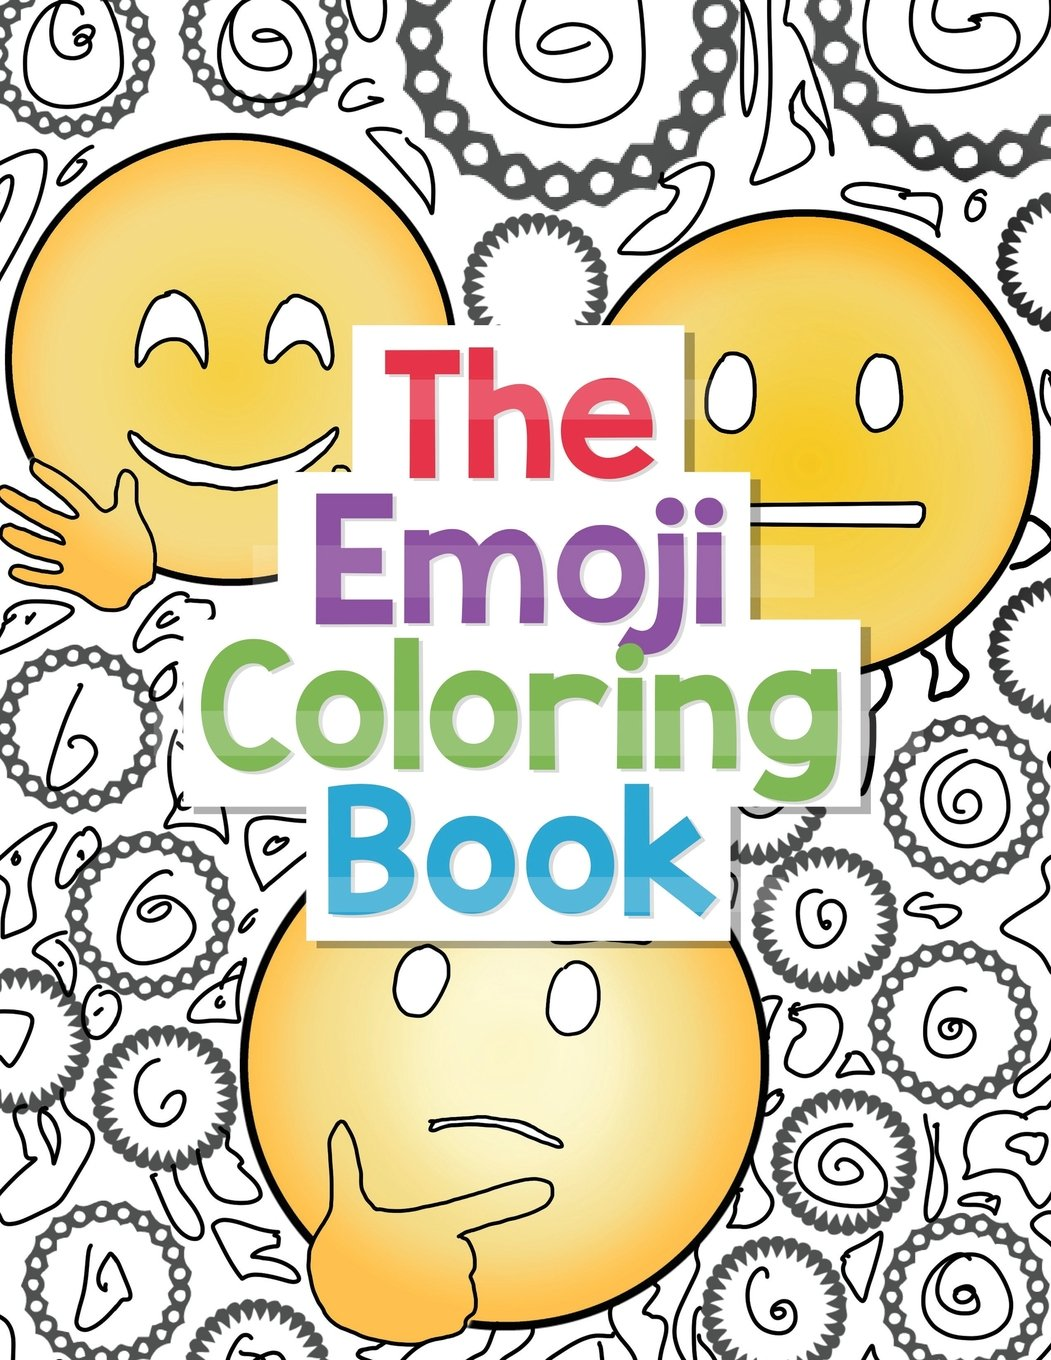 The Emoji Coloring Book: 30 Large Coloring Pages of Cute, Funny and Awesome Emoji Designs with Smiley Faces